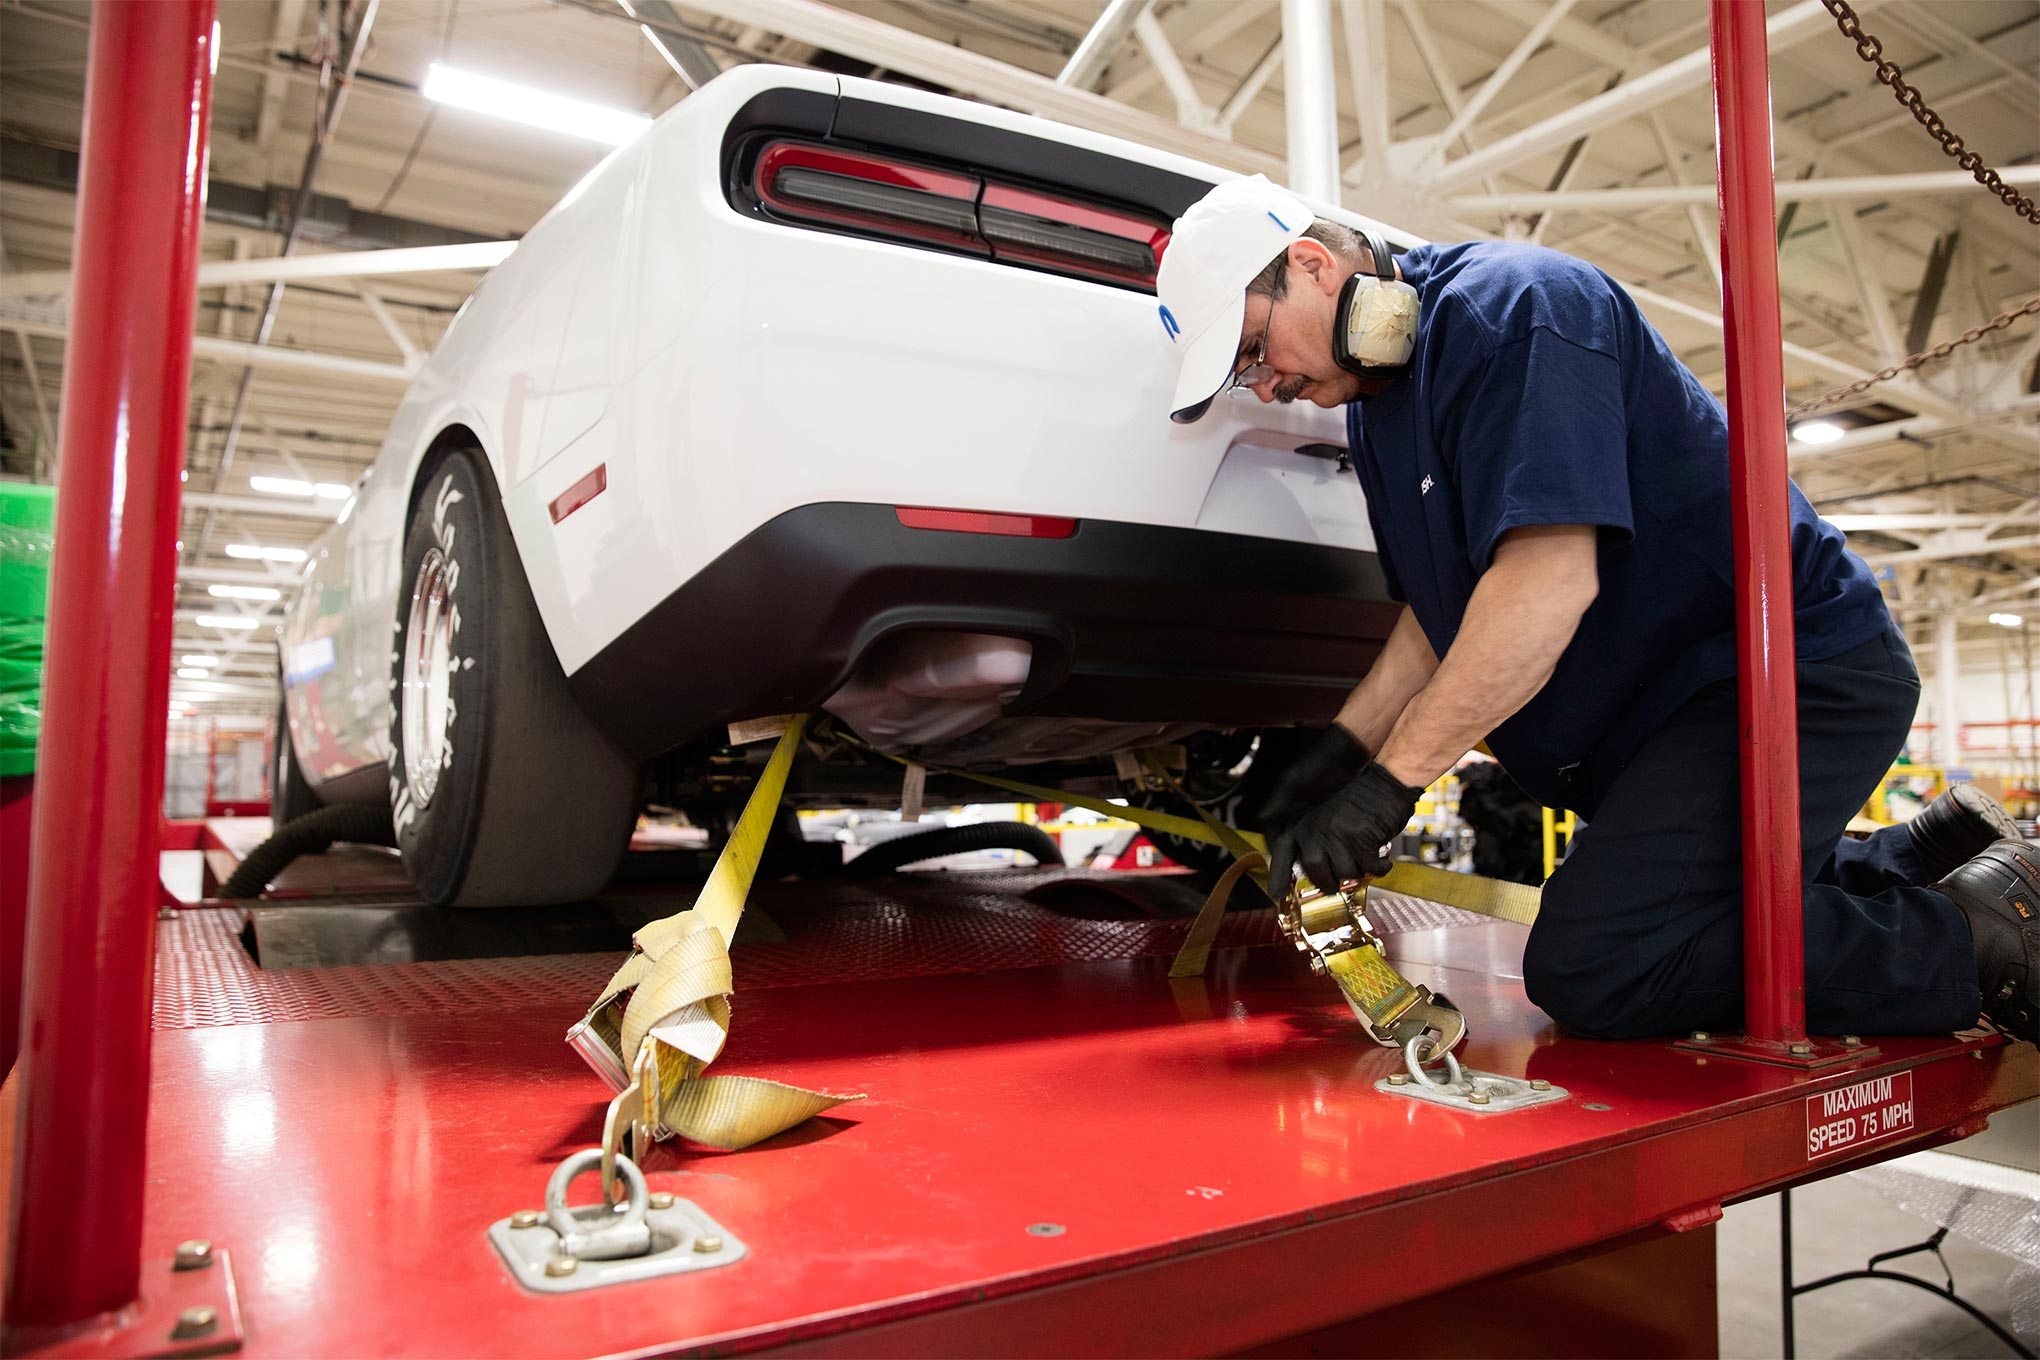 Once final assembly is complete, each new Mopar Challenger Drag Pak goes on the rollers to break-in the transmission and rear differential and to check for any leaks.